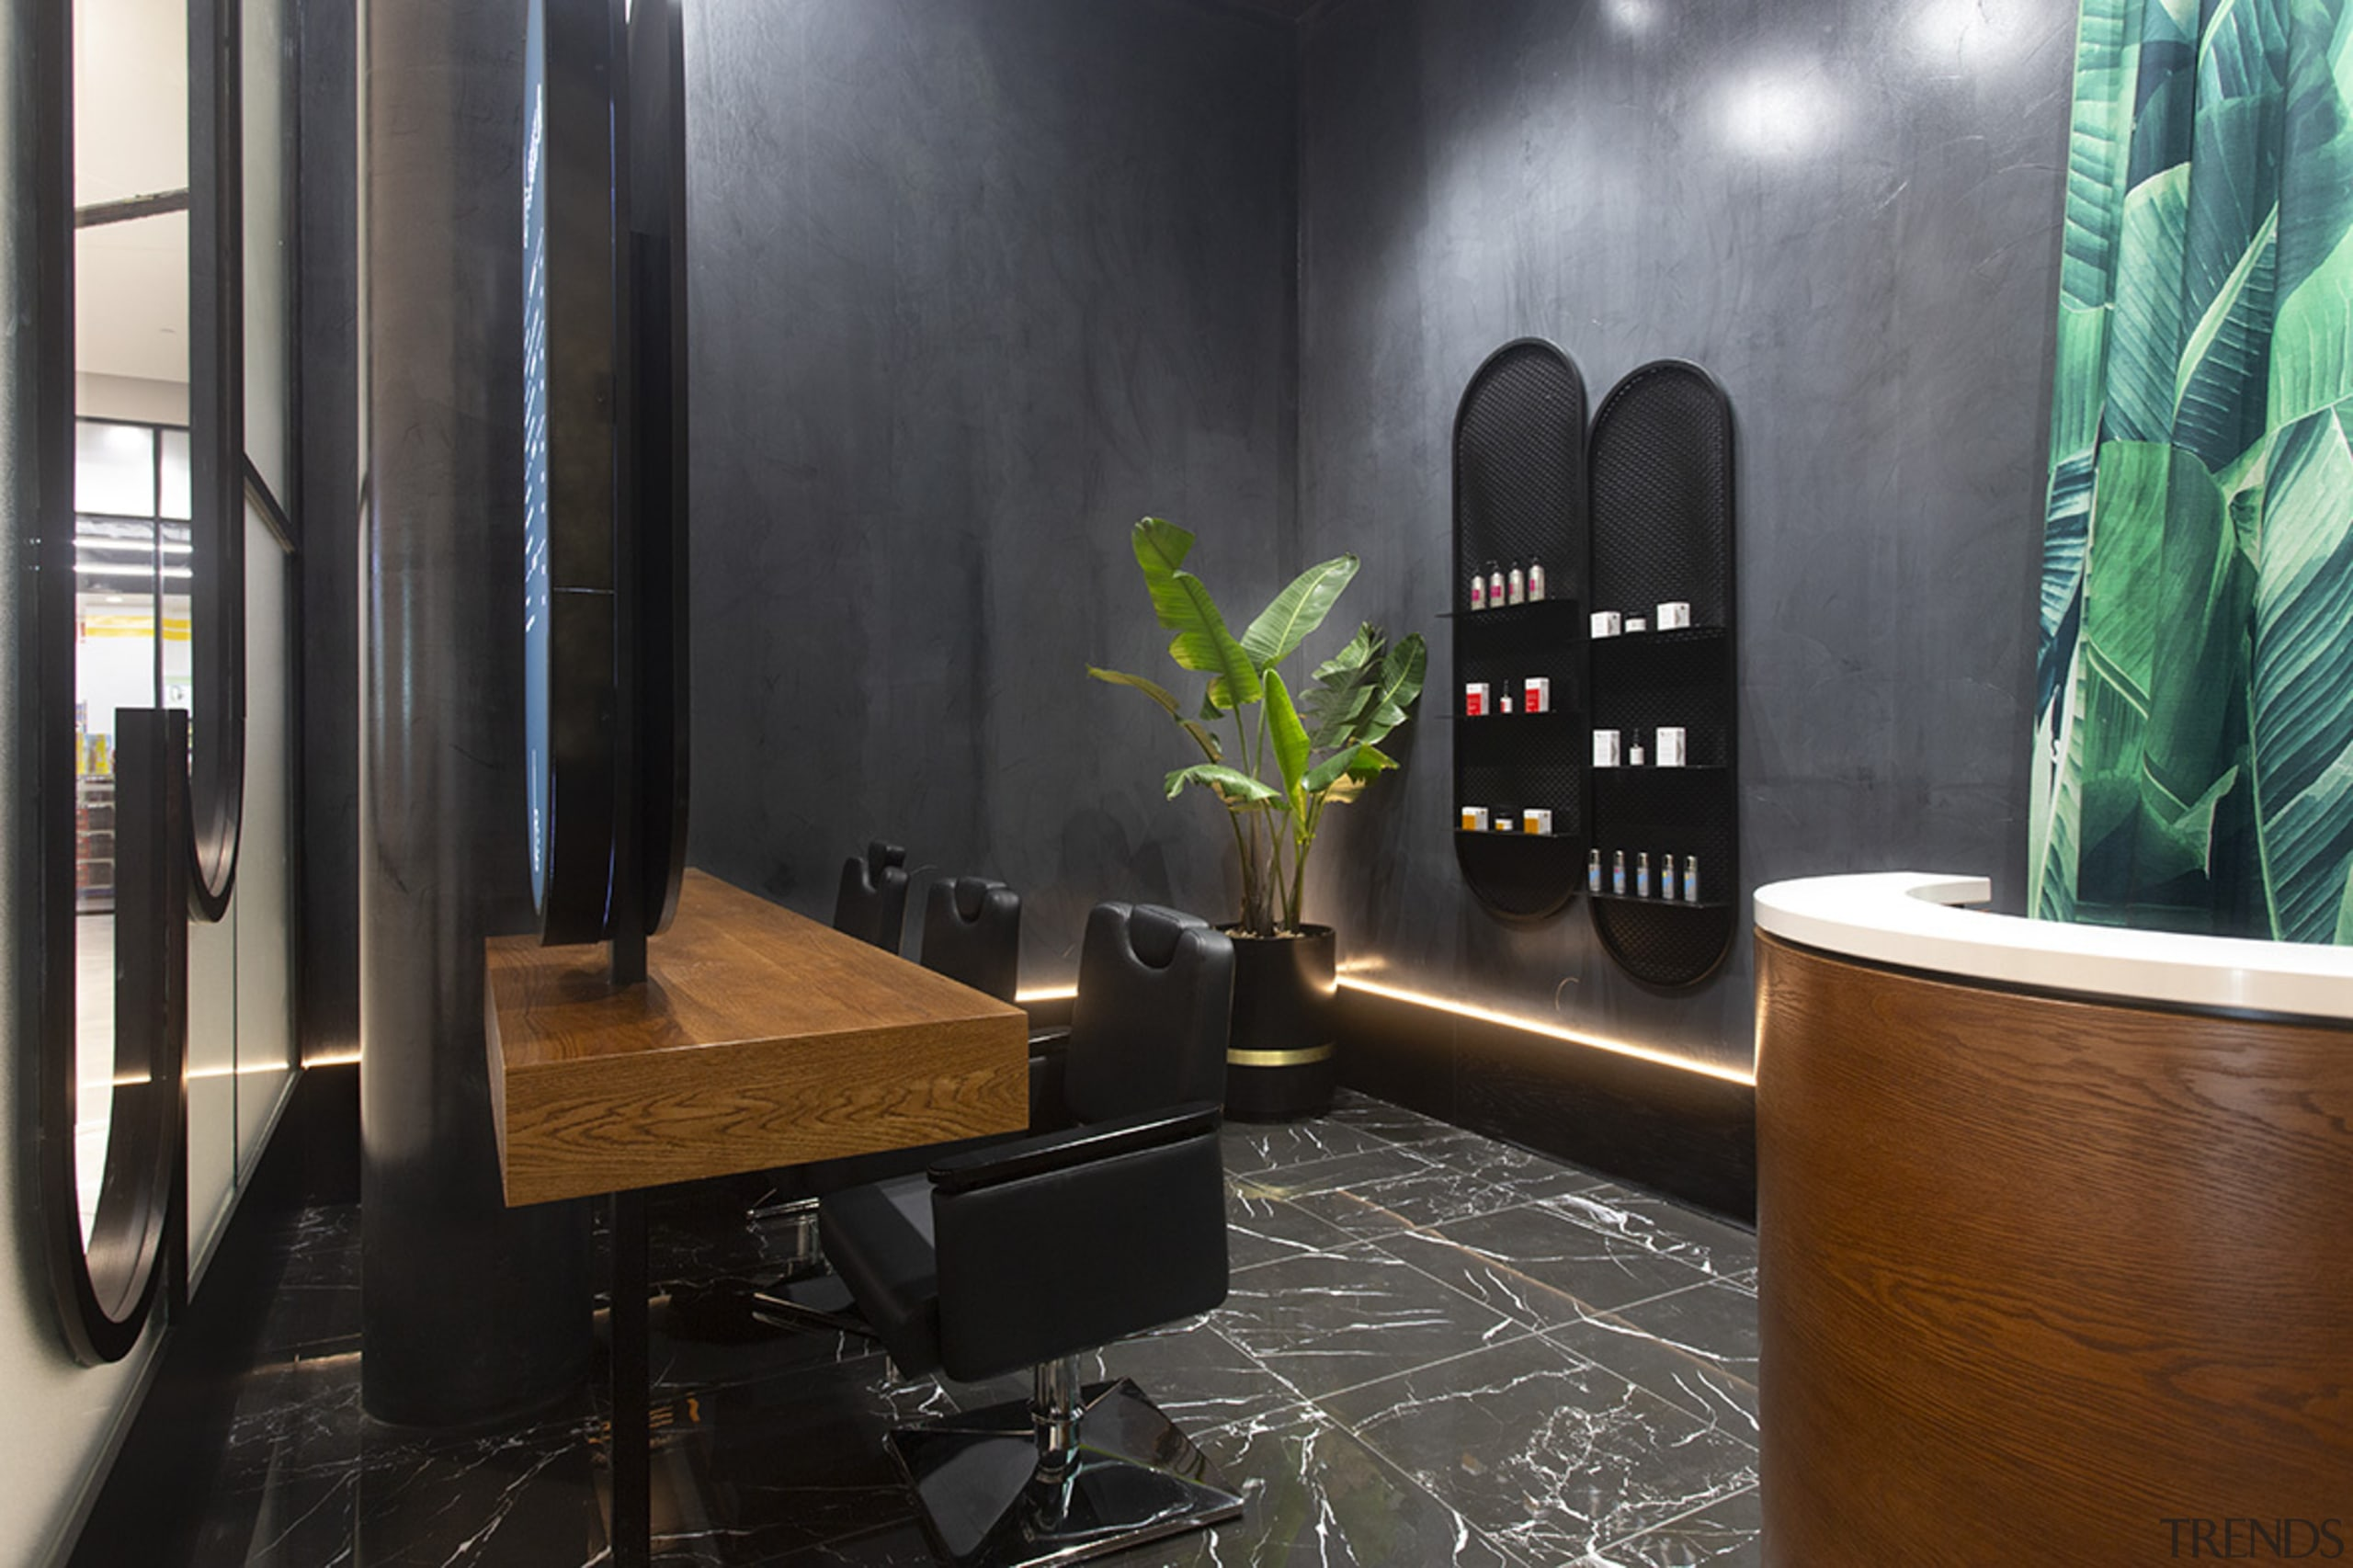 The black-out experience – entering into a black architecture, building, floor, flooring, furniture, hardwood, houseplant, interior design, lobby, plant, property, room, tile, black